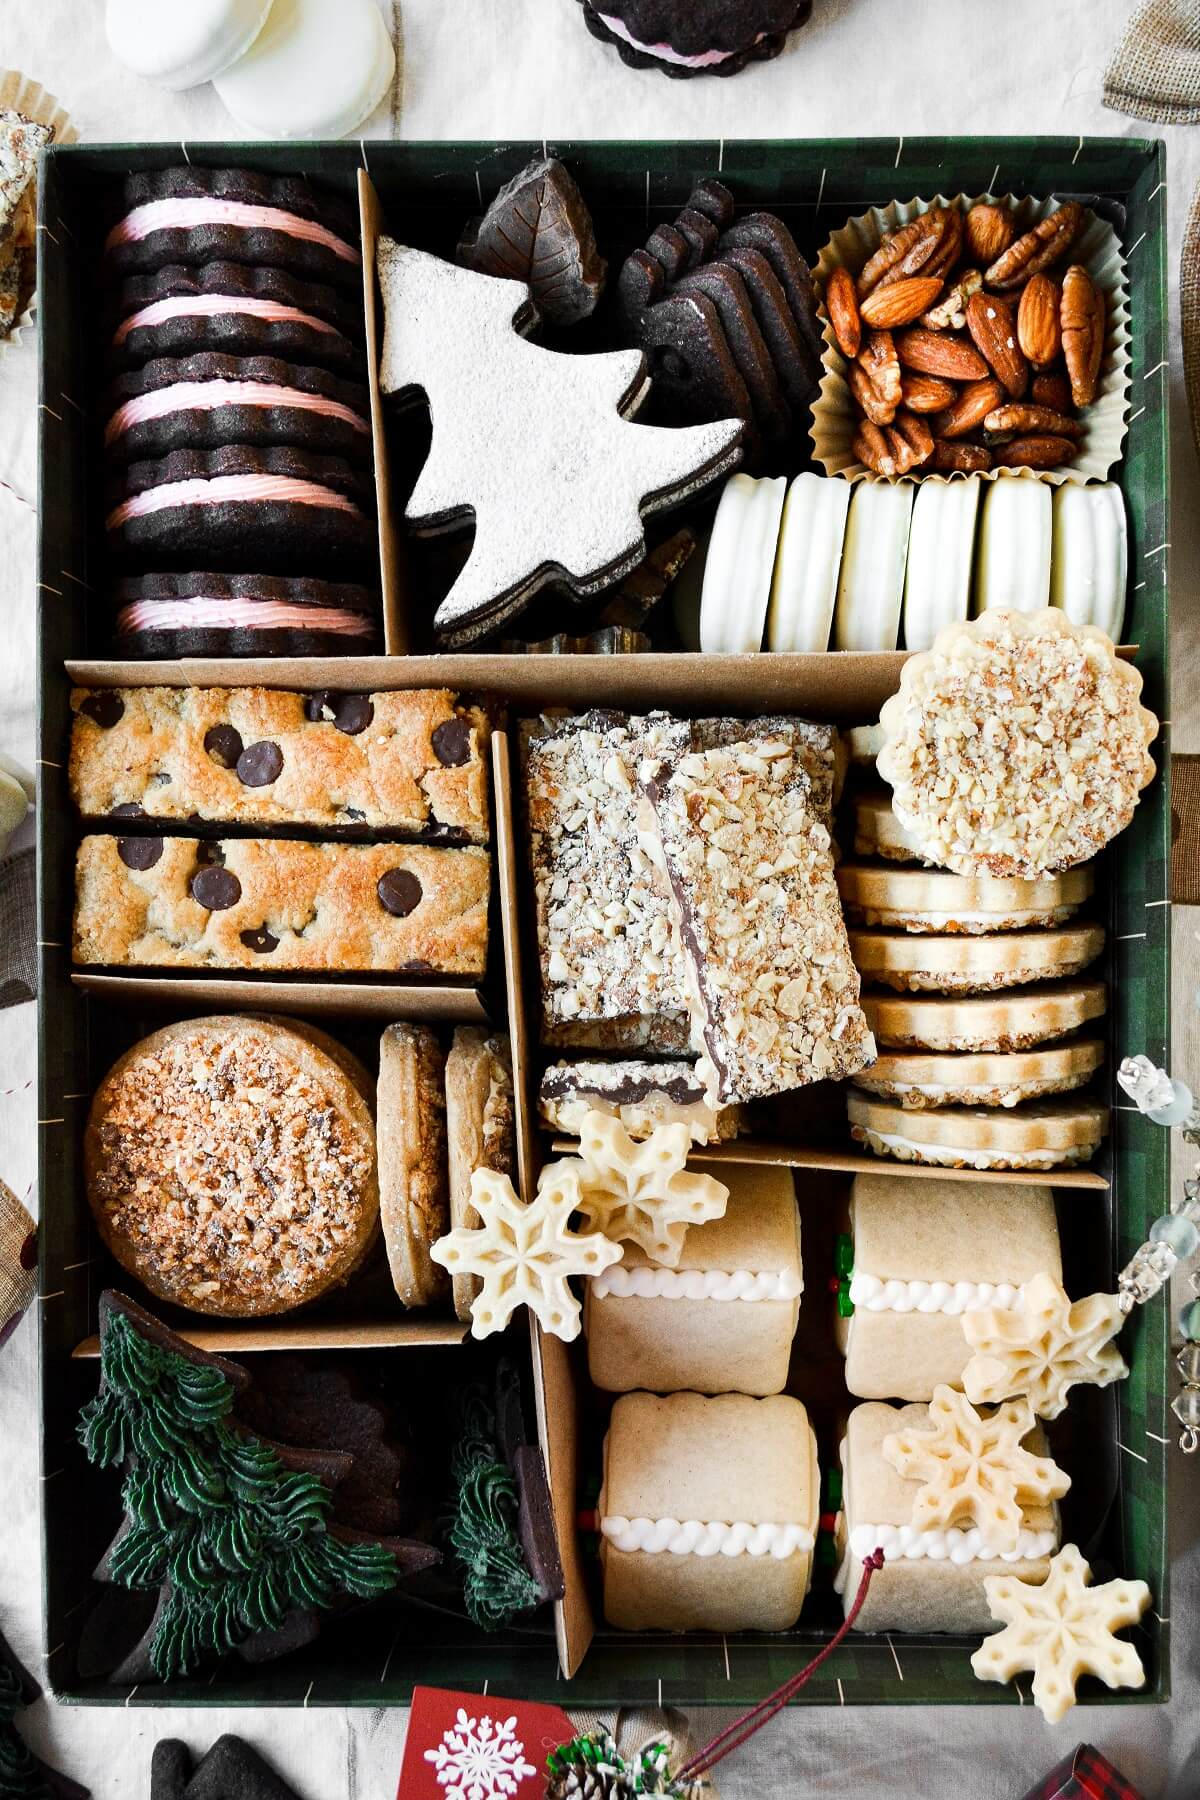 A box full of assorted Christmas cookies.